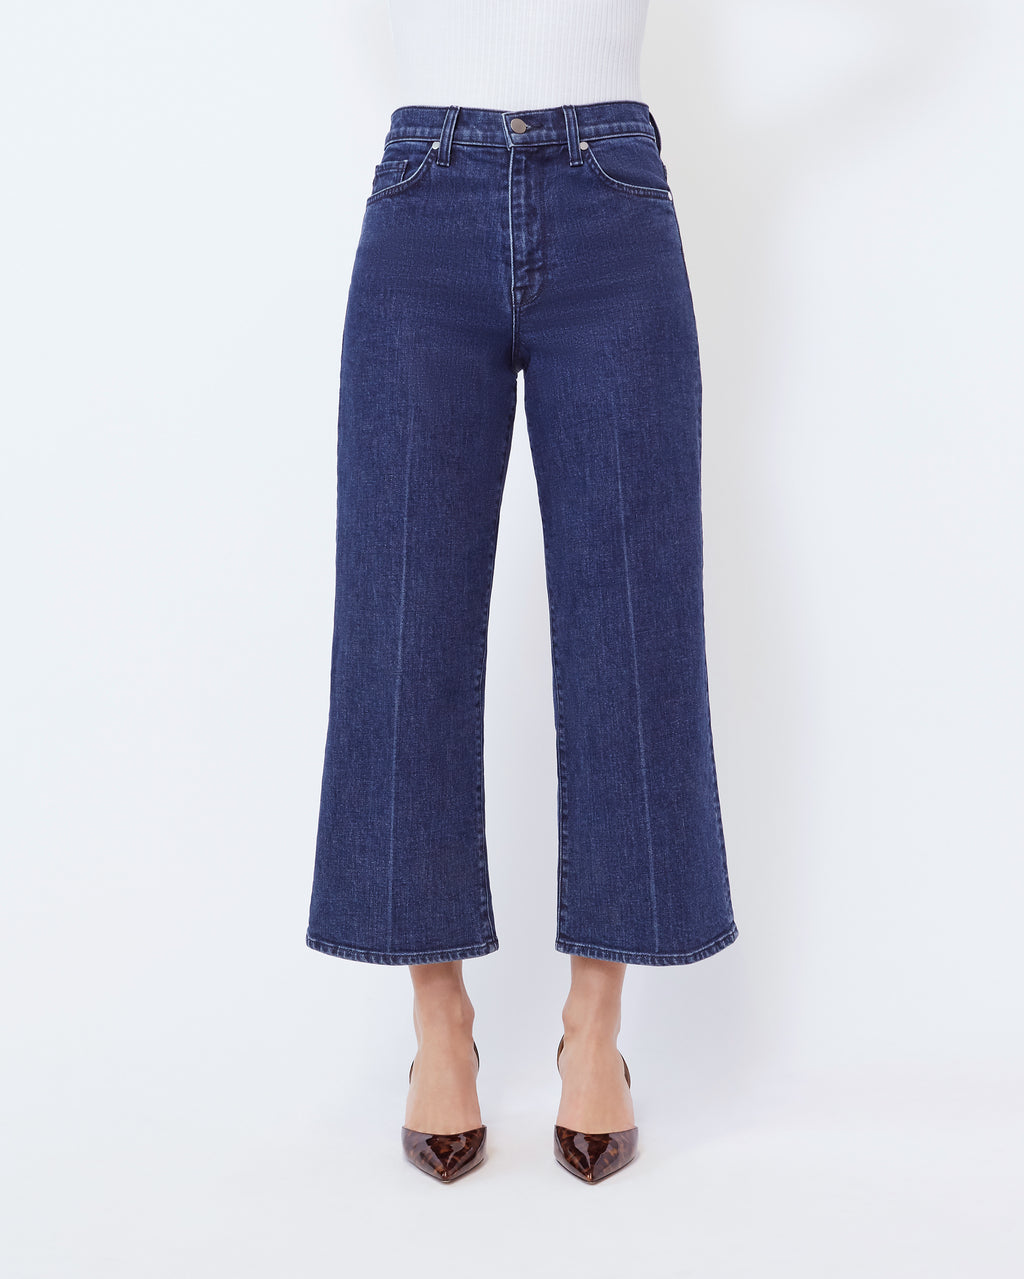 The Cropped Wide Leg Jean in Aura